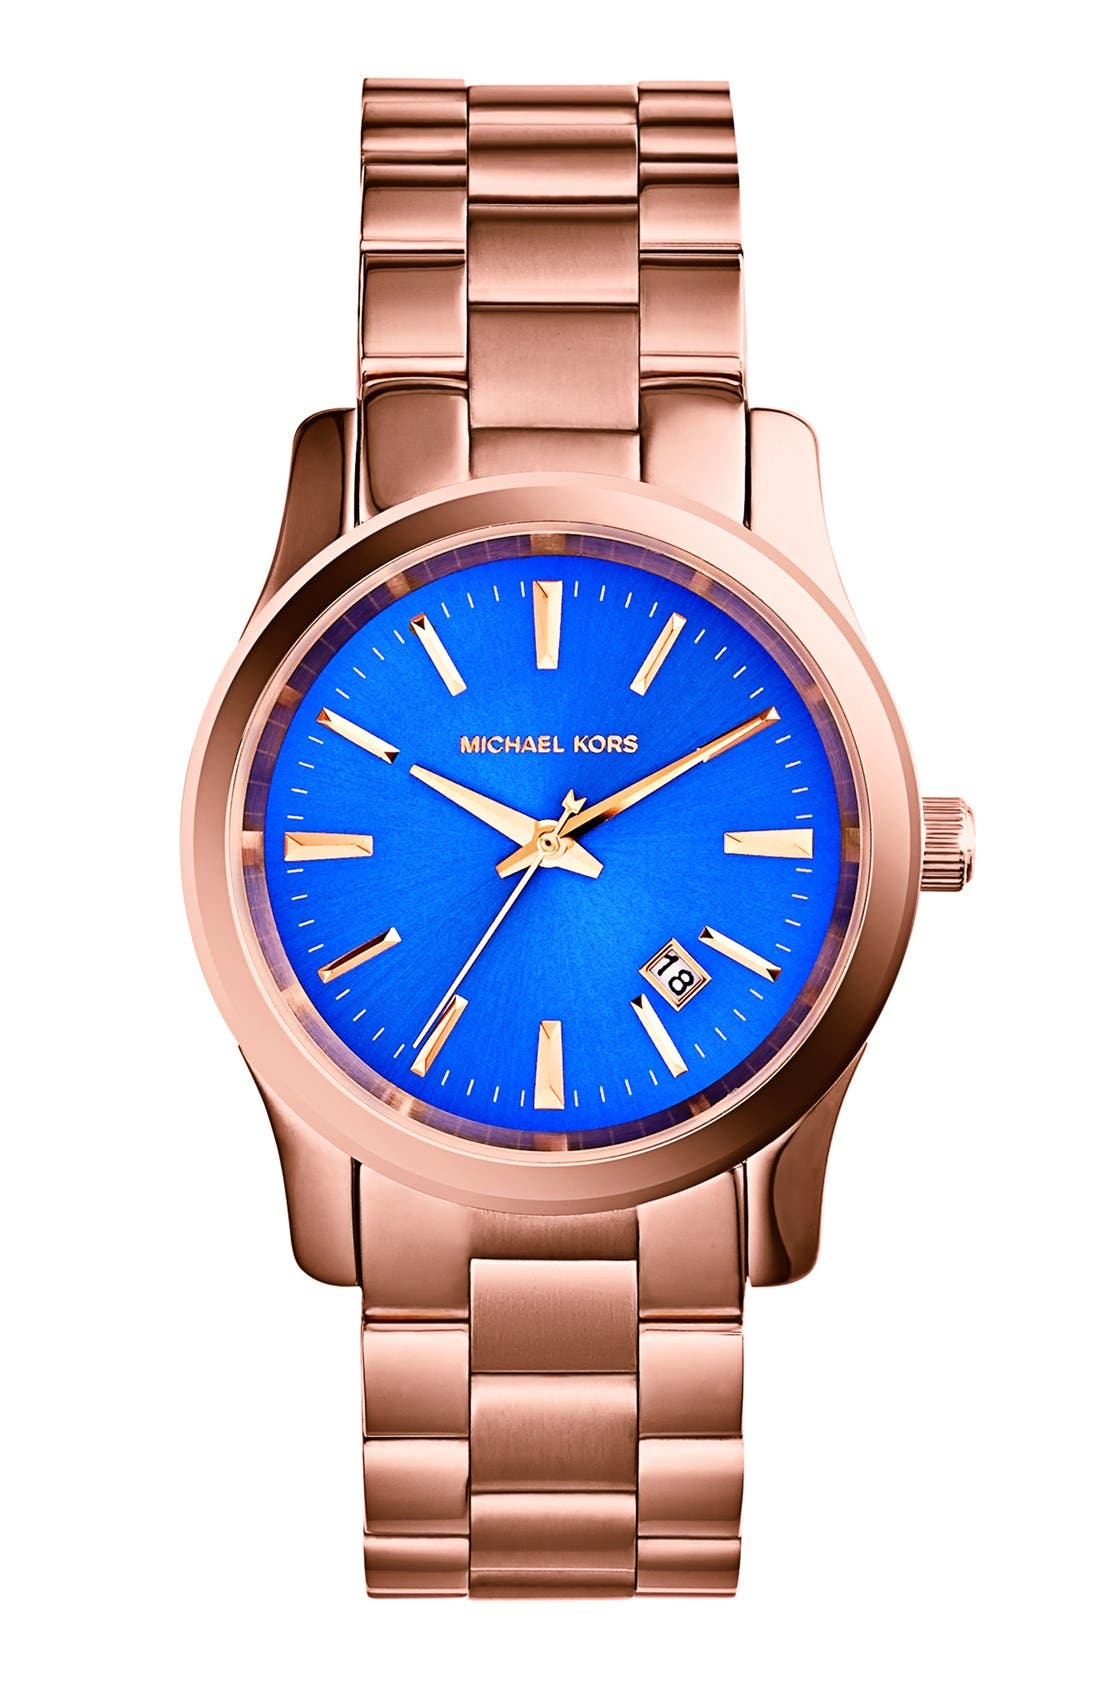 Main Image - Michael Kors 'Runway' Round Bracelet Watch, 38mm